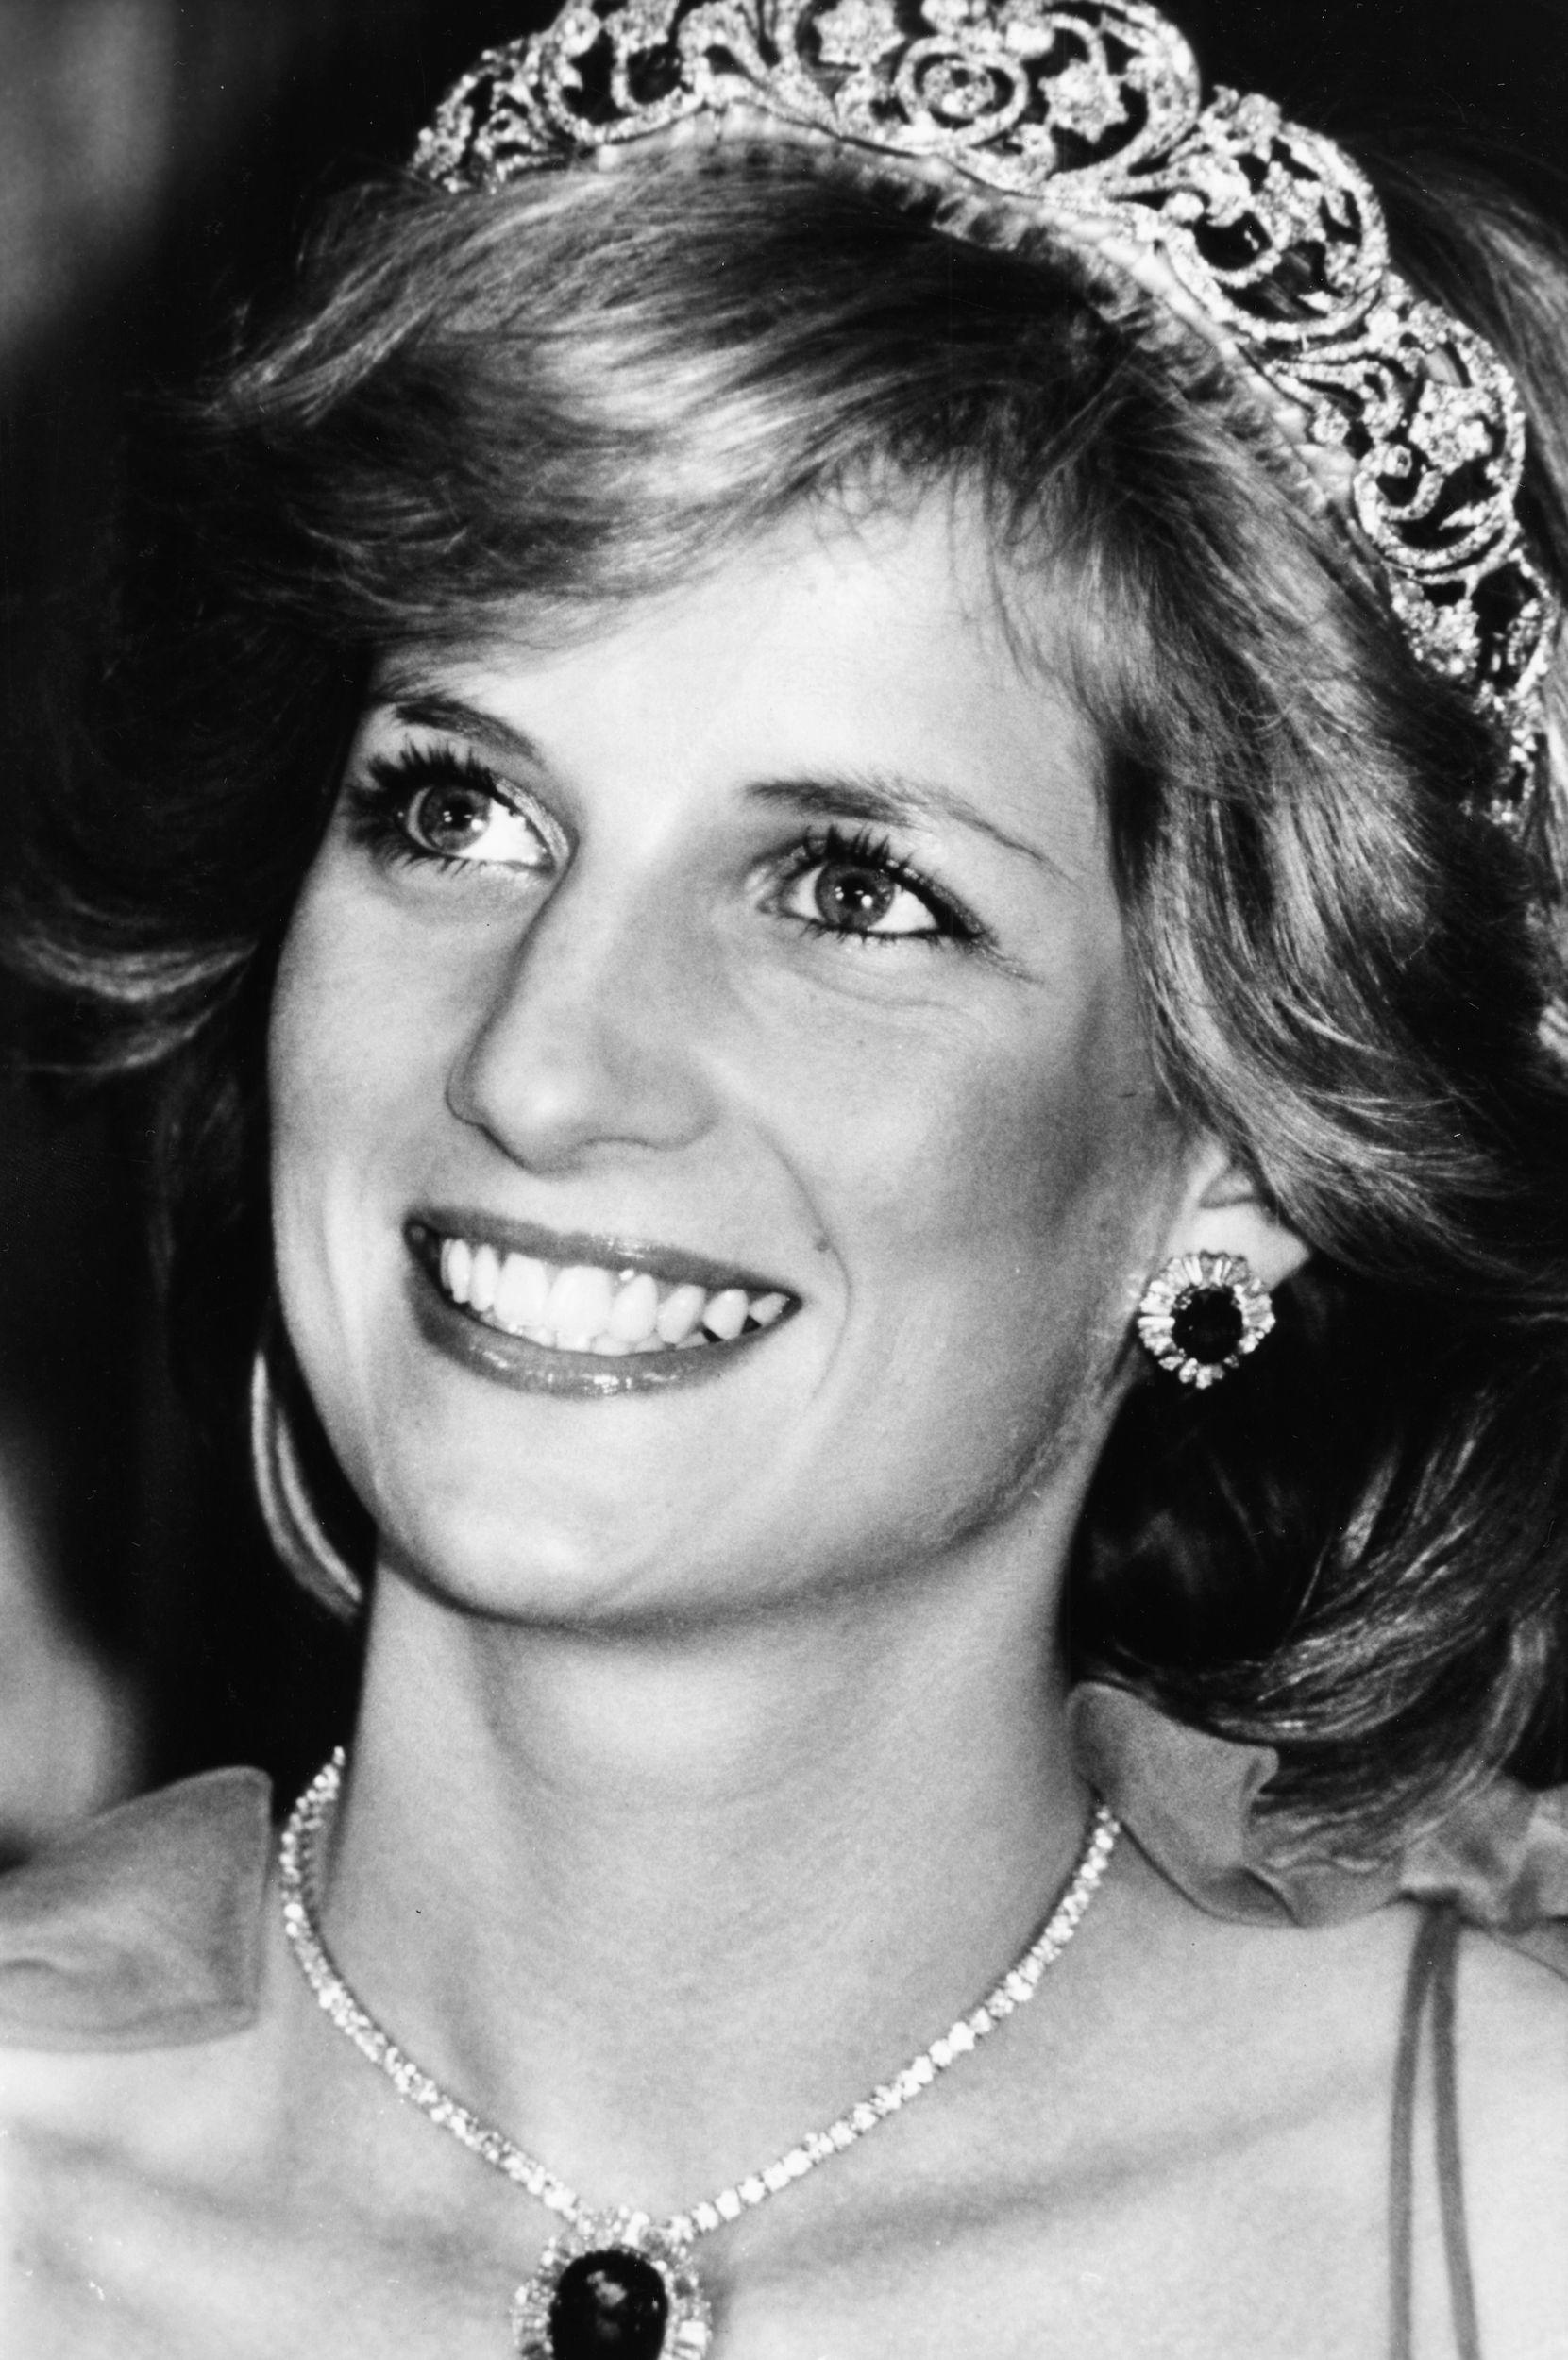 Today in History: Princess Diana killed in car crash